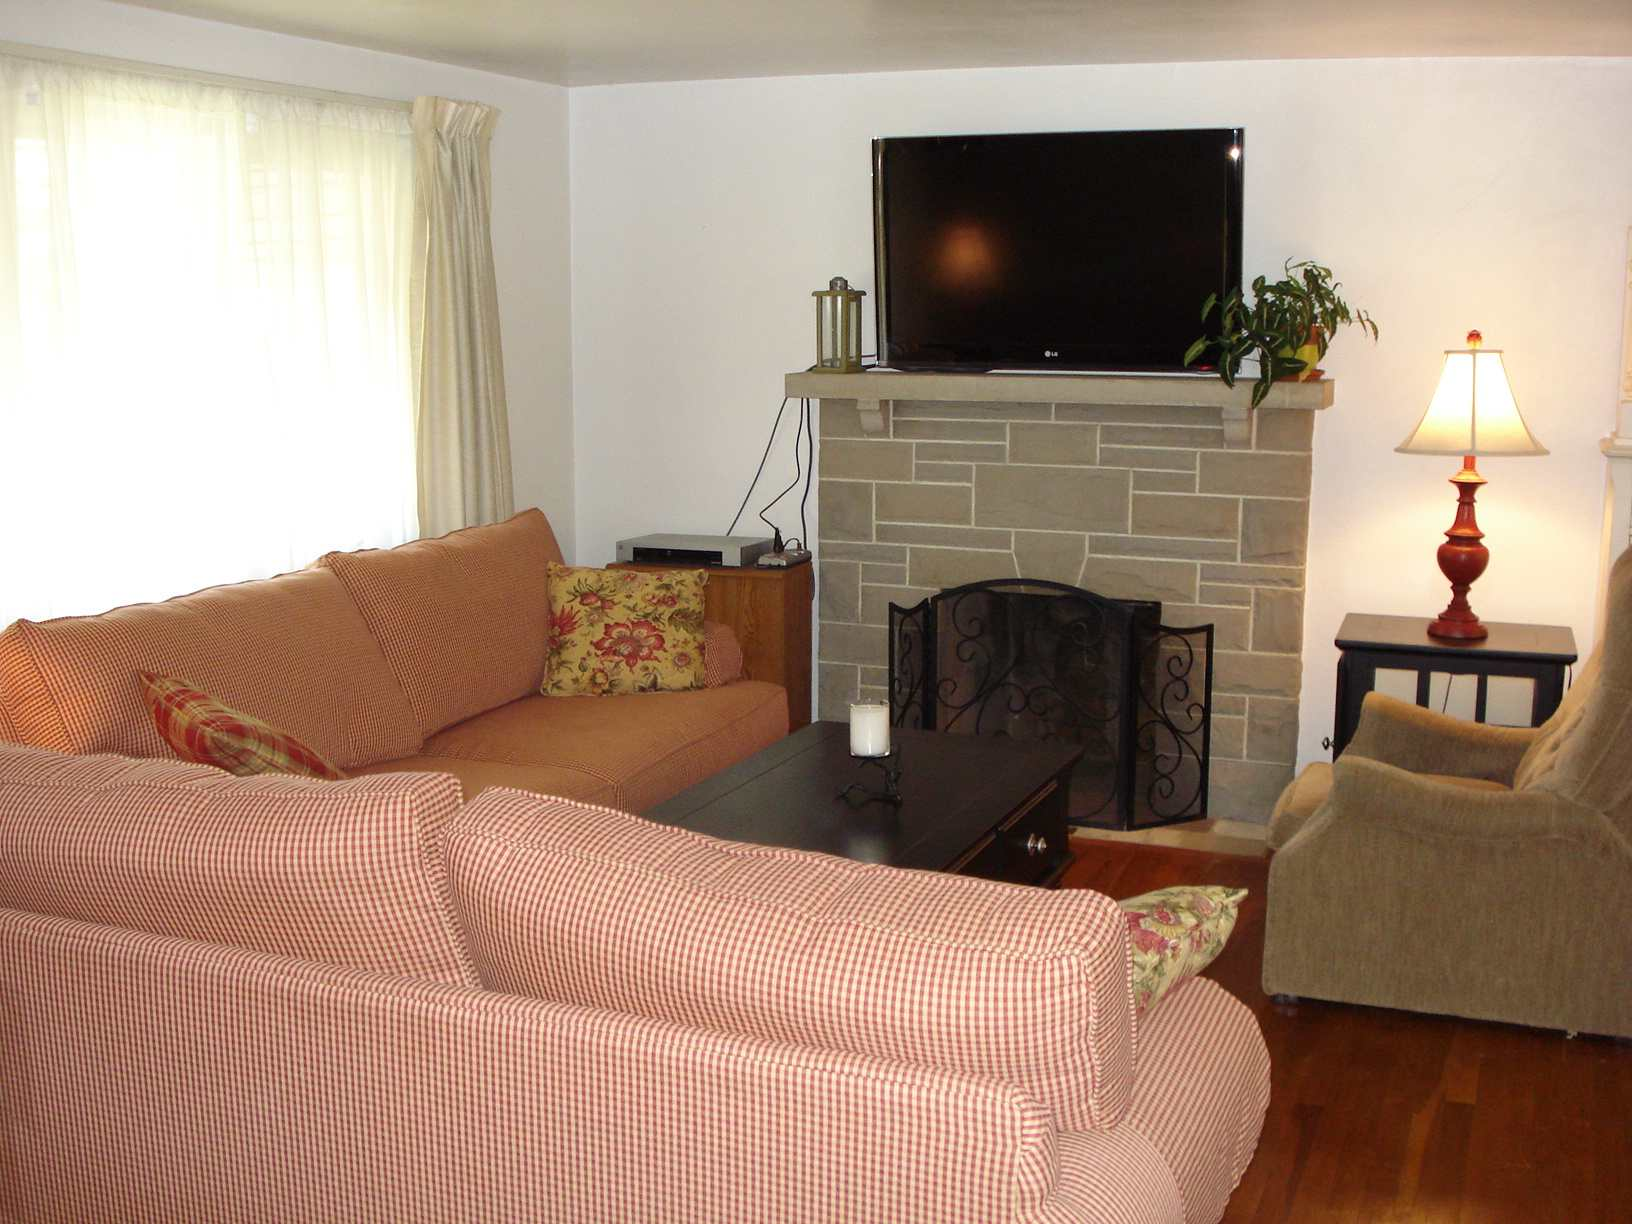 ForSaleByOwner (FSBO) home in Pittsburgh, PA at ForSaleByOwnerBuyersGuide.com